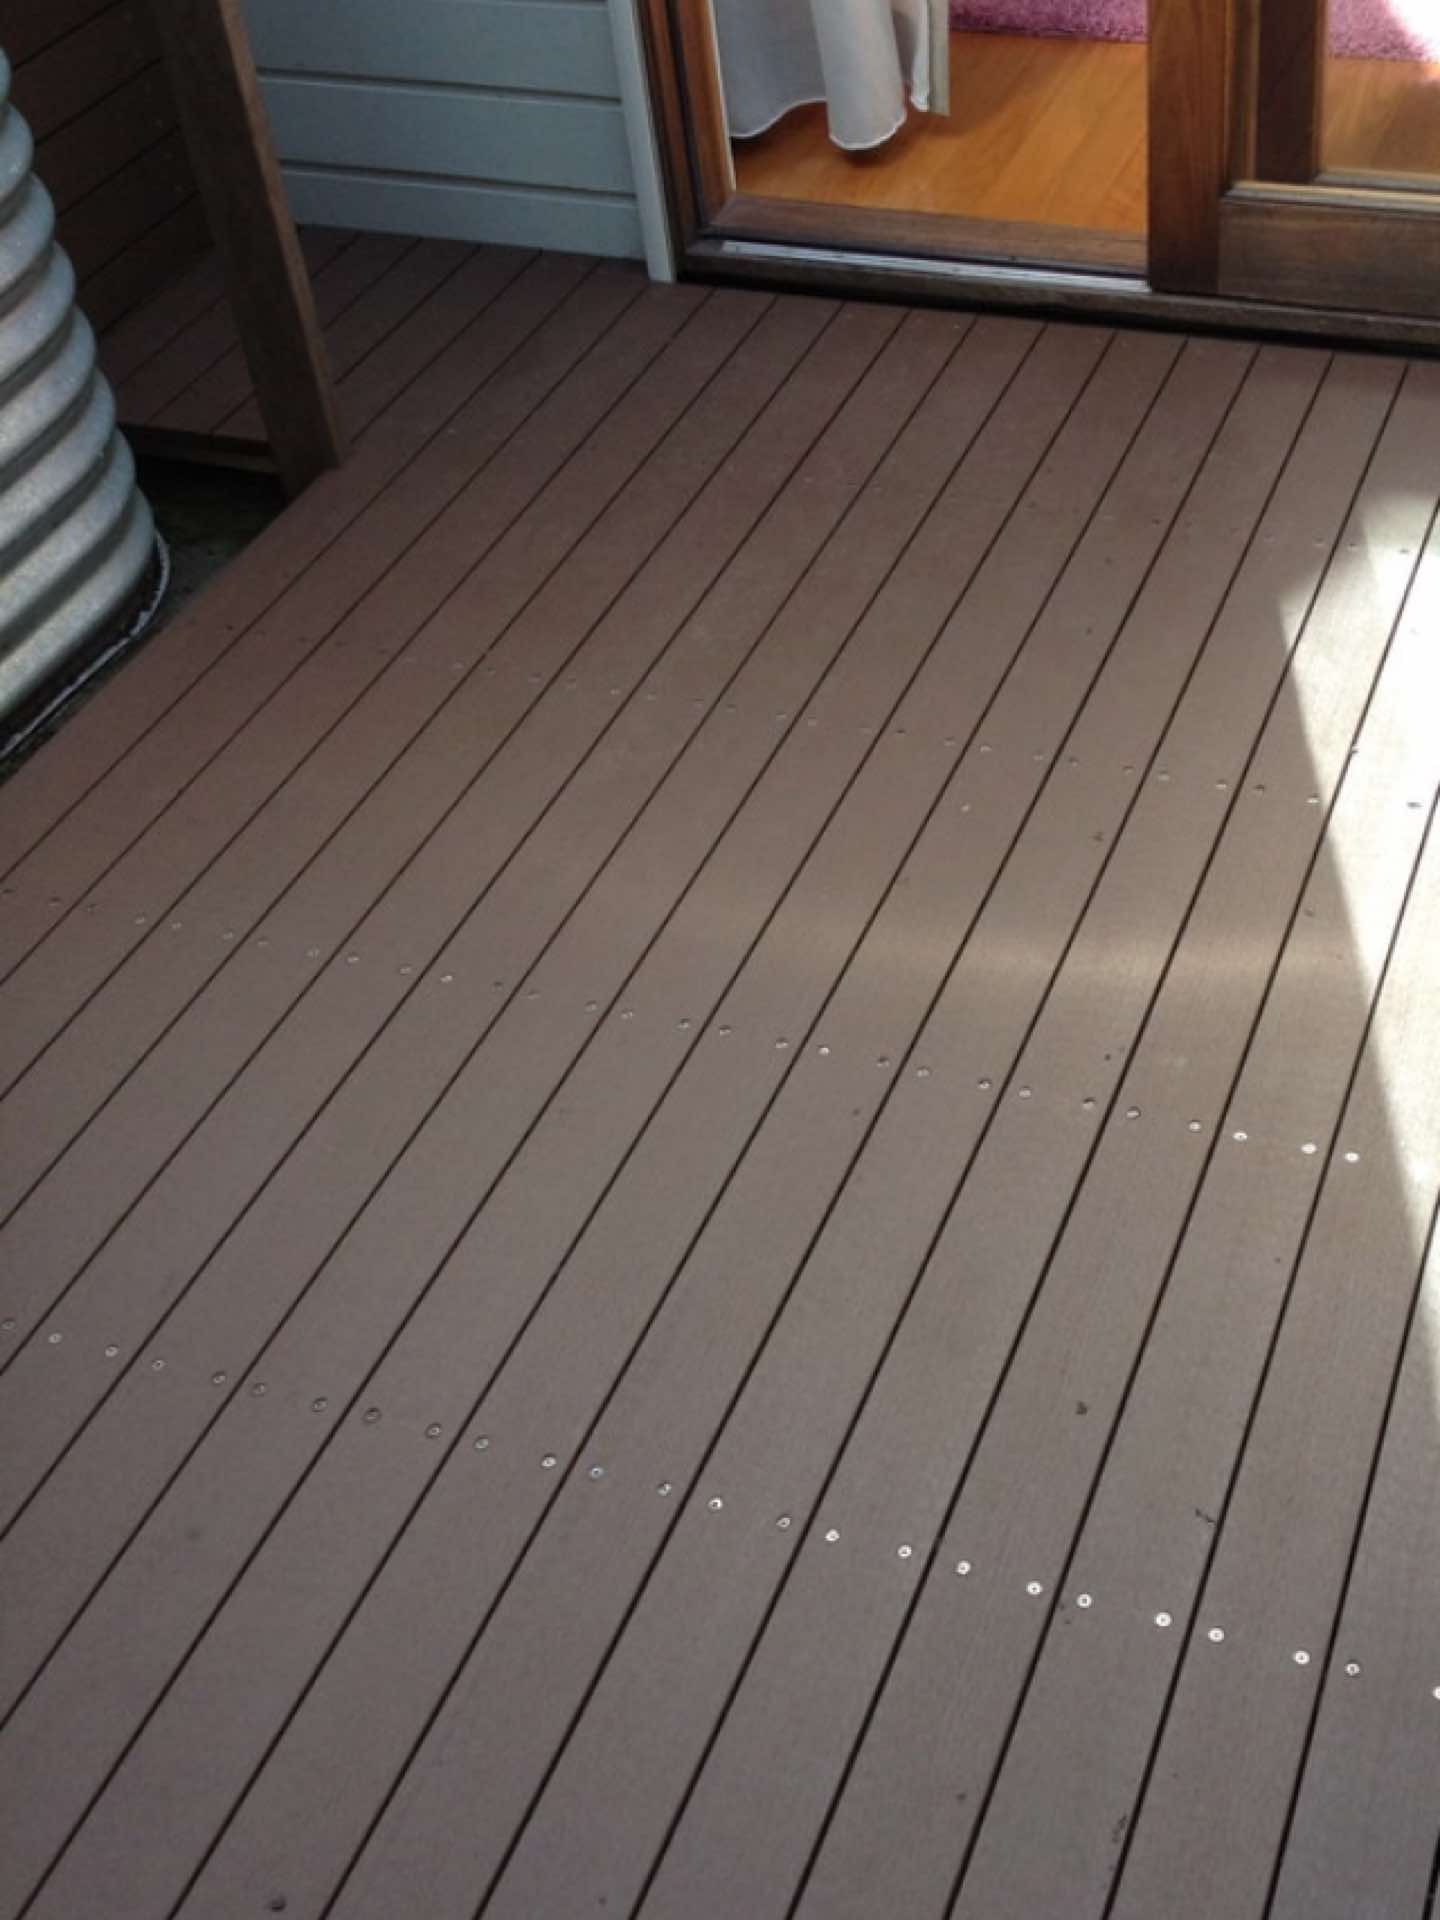 Internal courtyard that gets very little direct sunlight. Composite decking screwed down with stainless steel screws. Now a useable area Five Dock, NSW